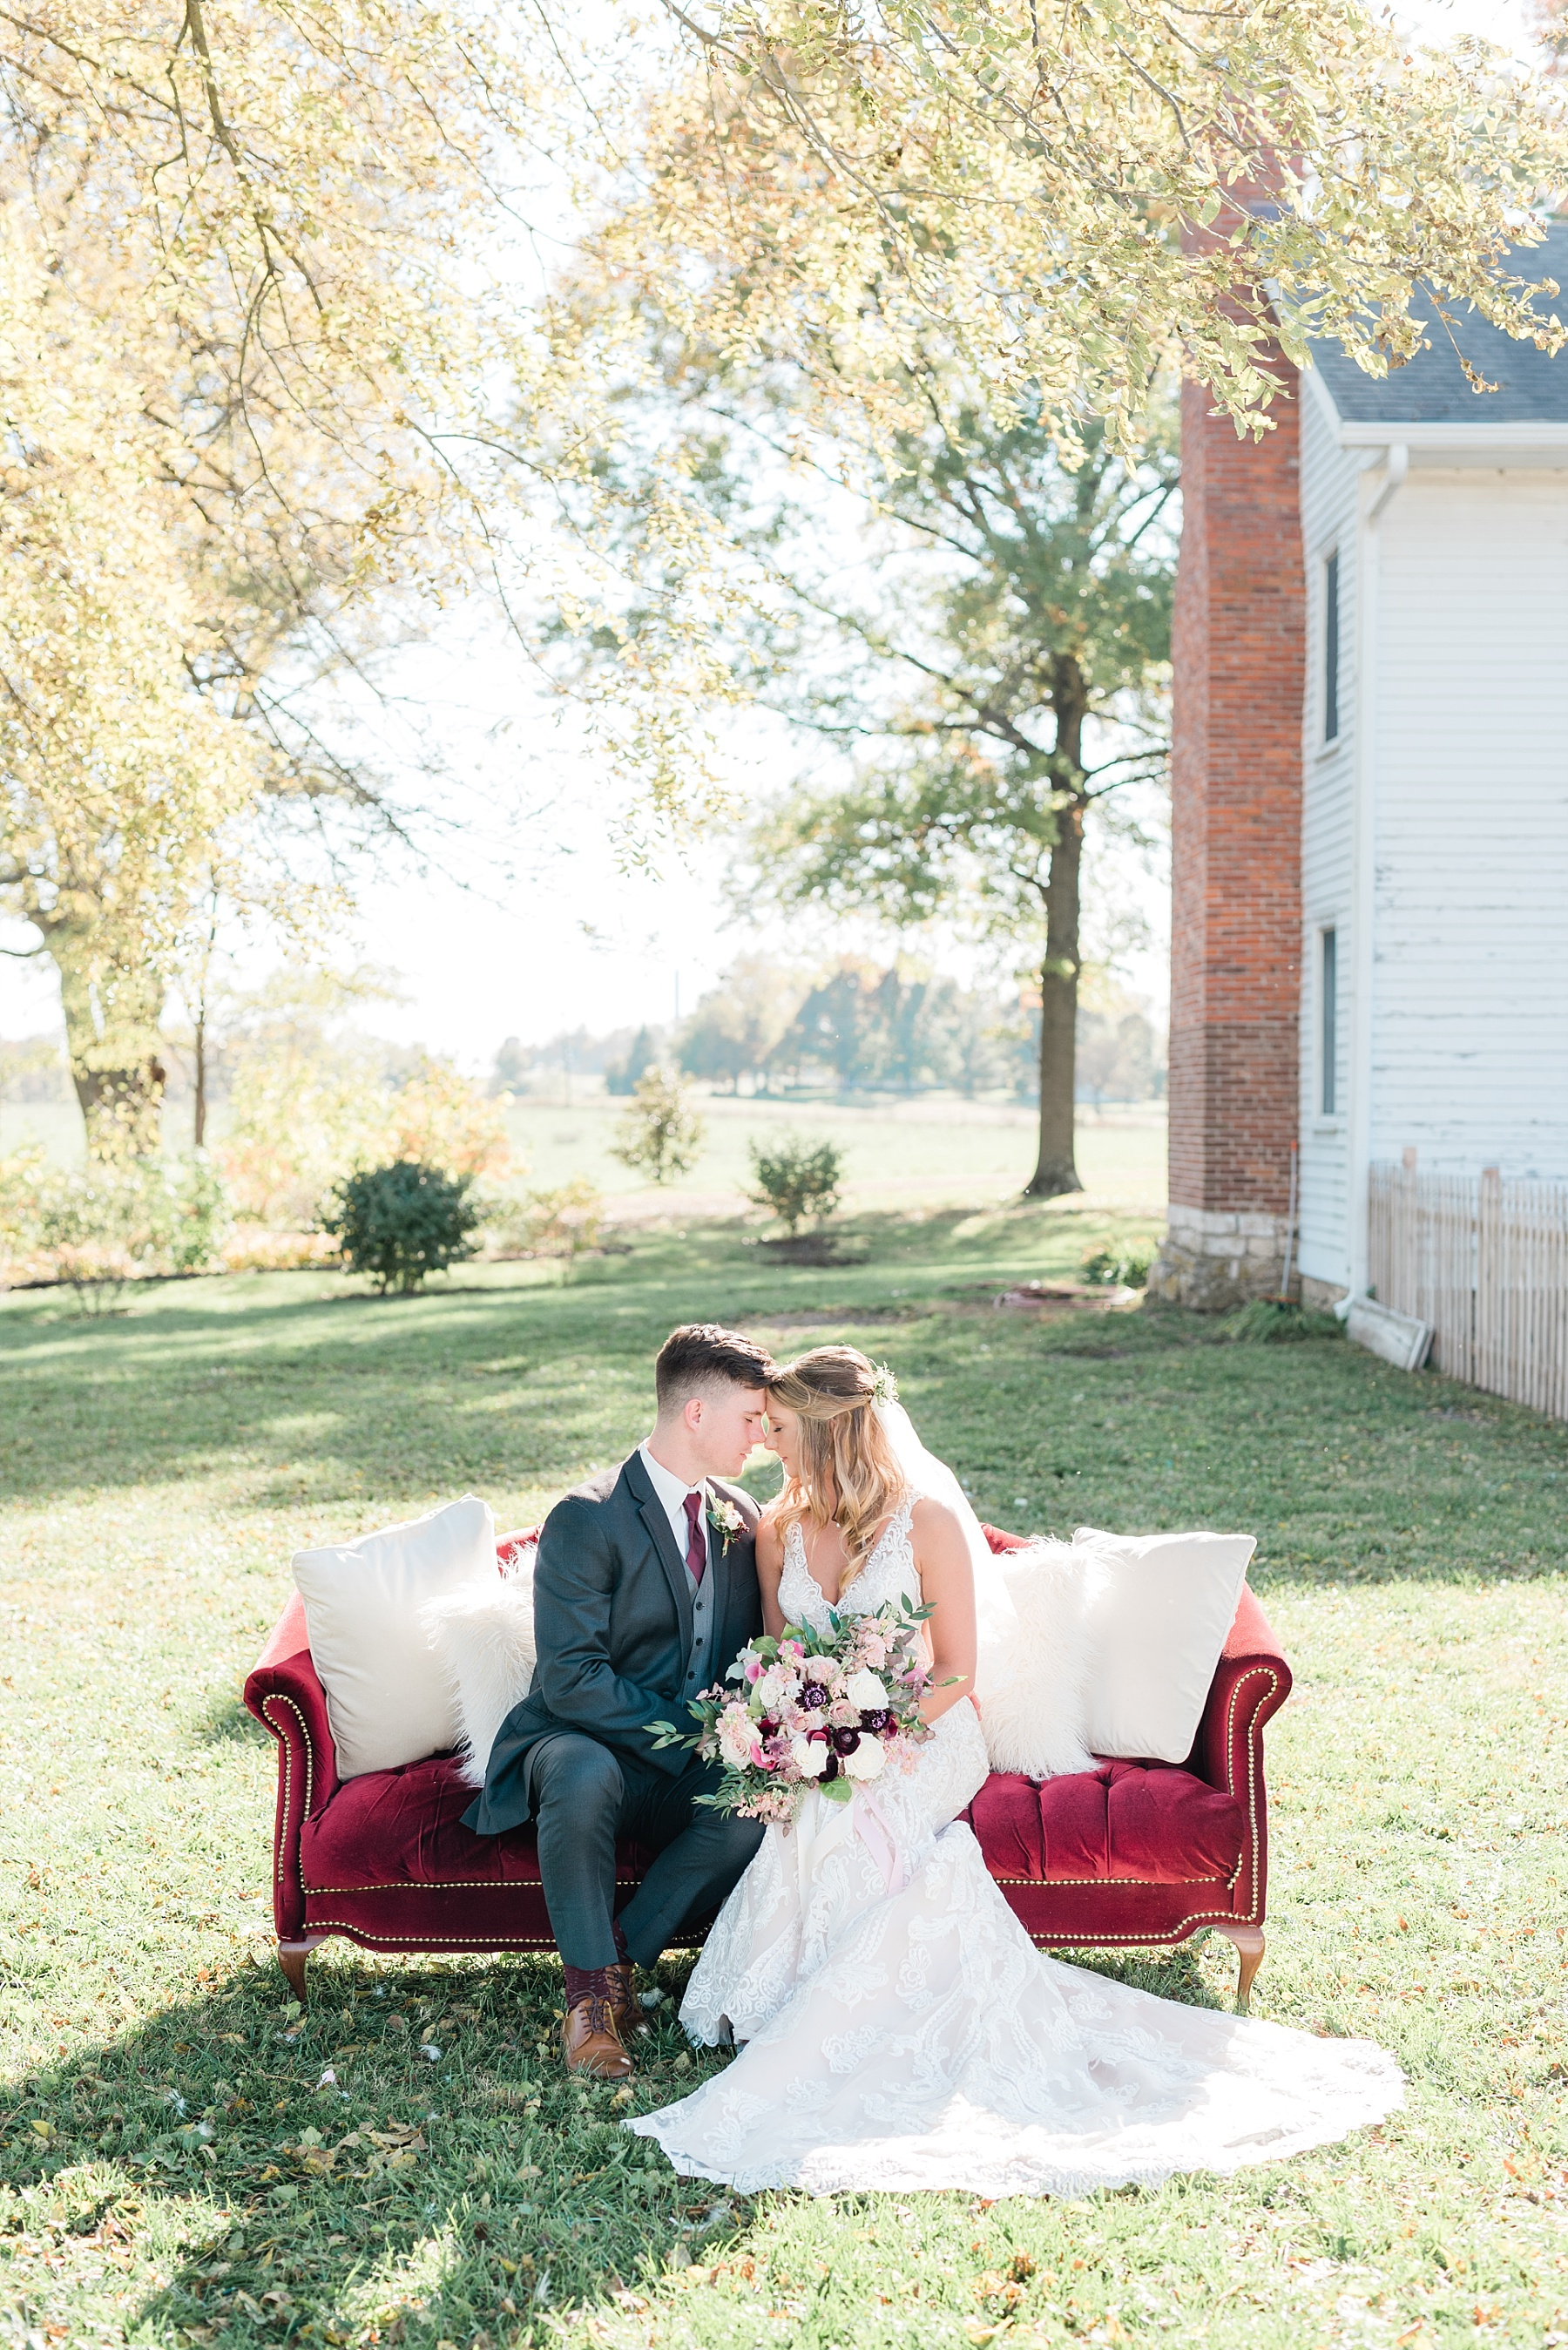 Golden Autumn Outdoor Wedding with Ivory, Bergundy, and Blush Color Palette at Blue Bell Farms  by Kelsi Kliethermes Photography_0069.jpg